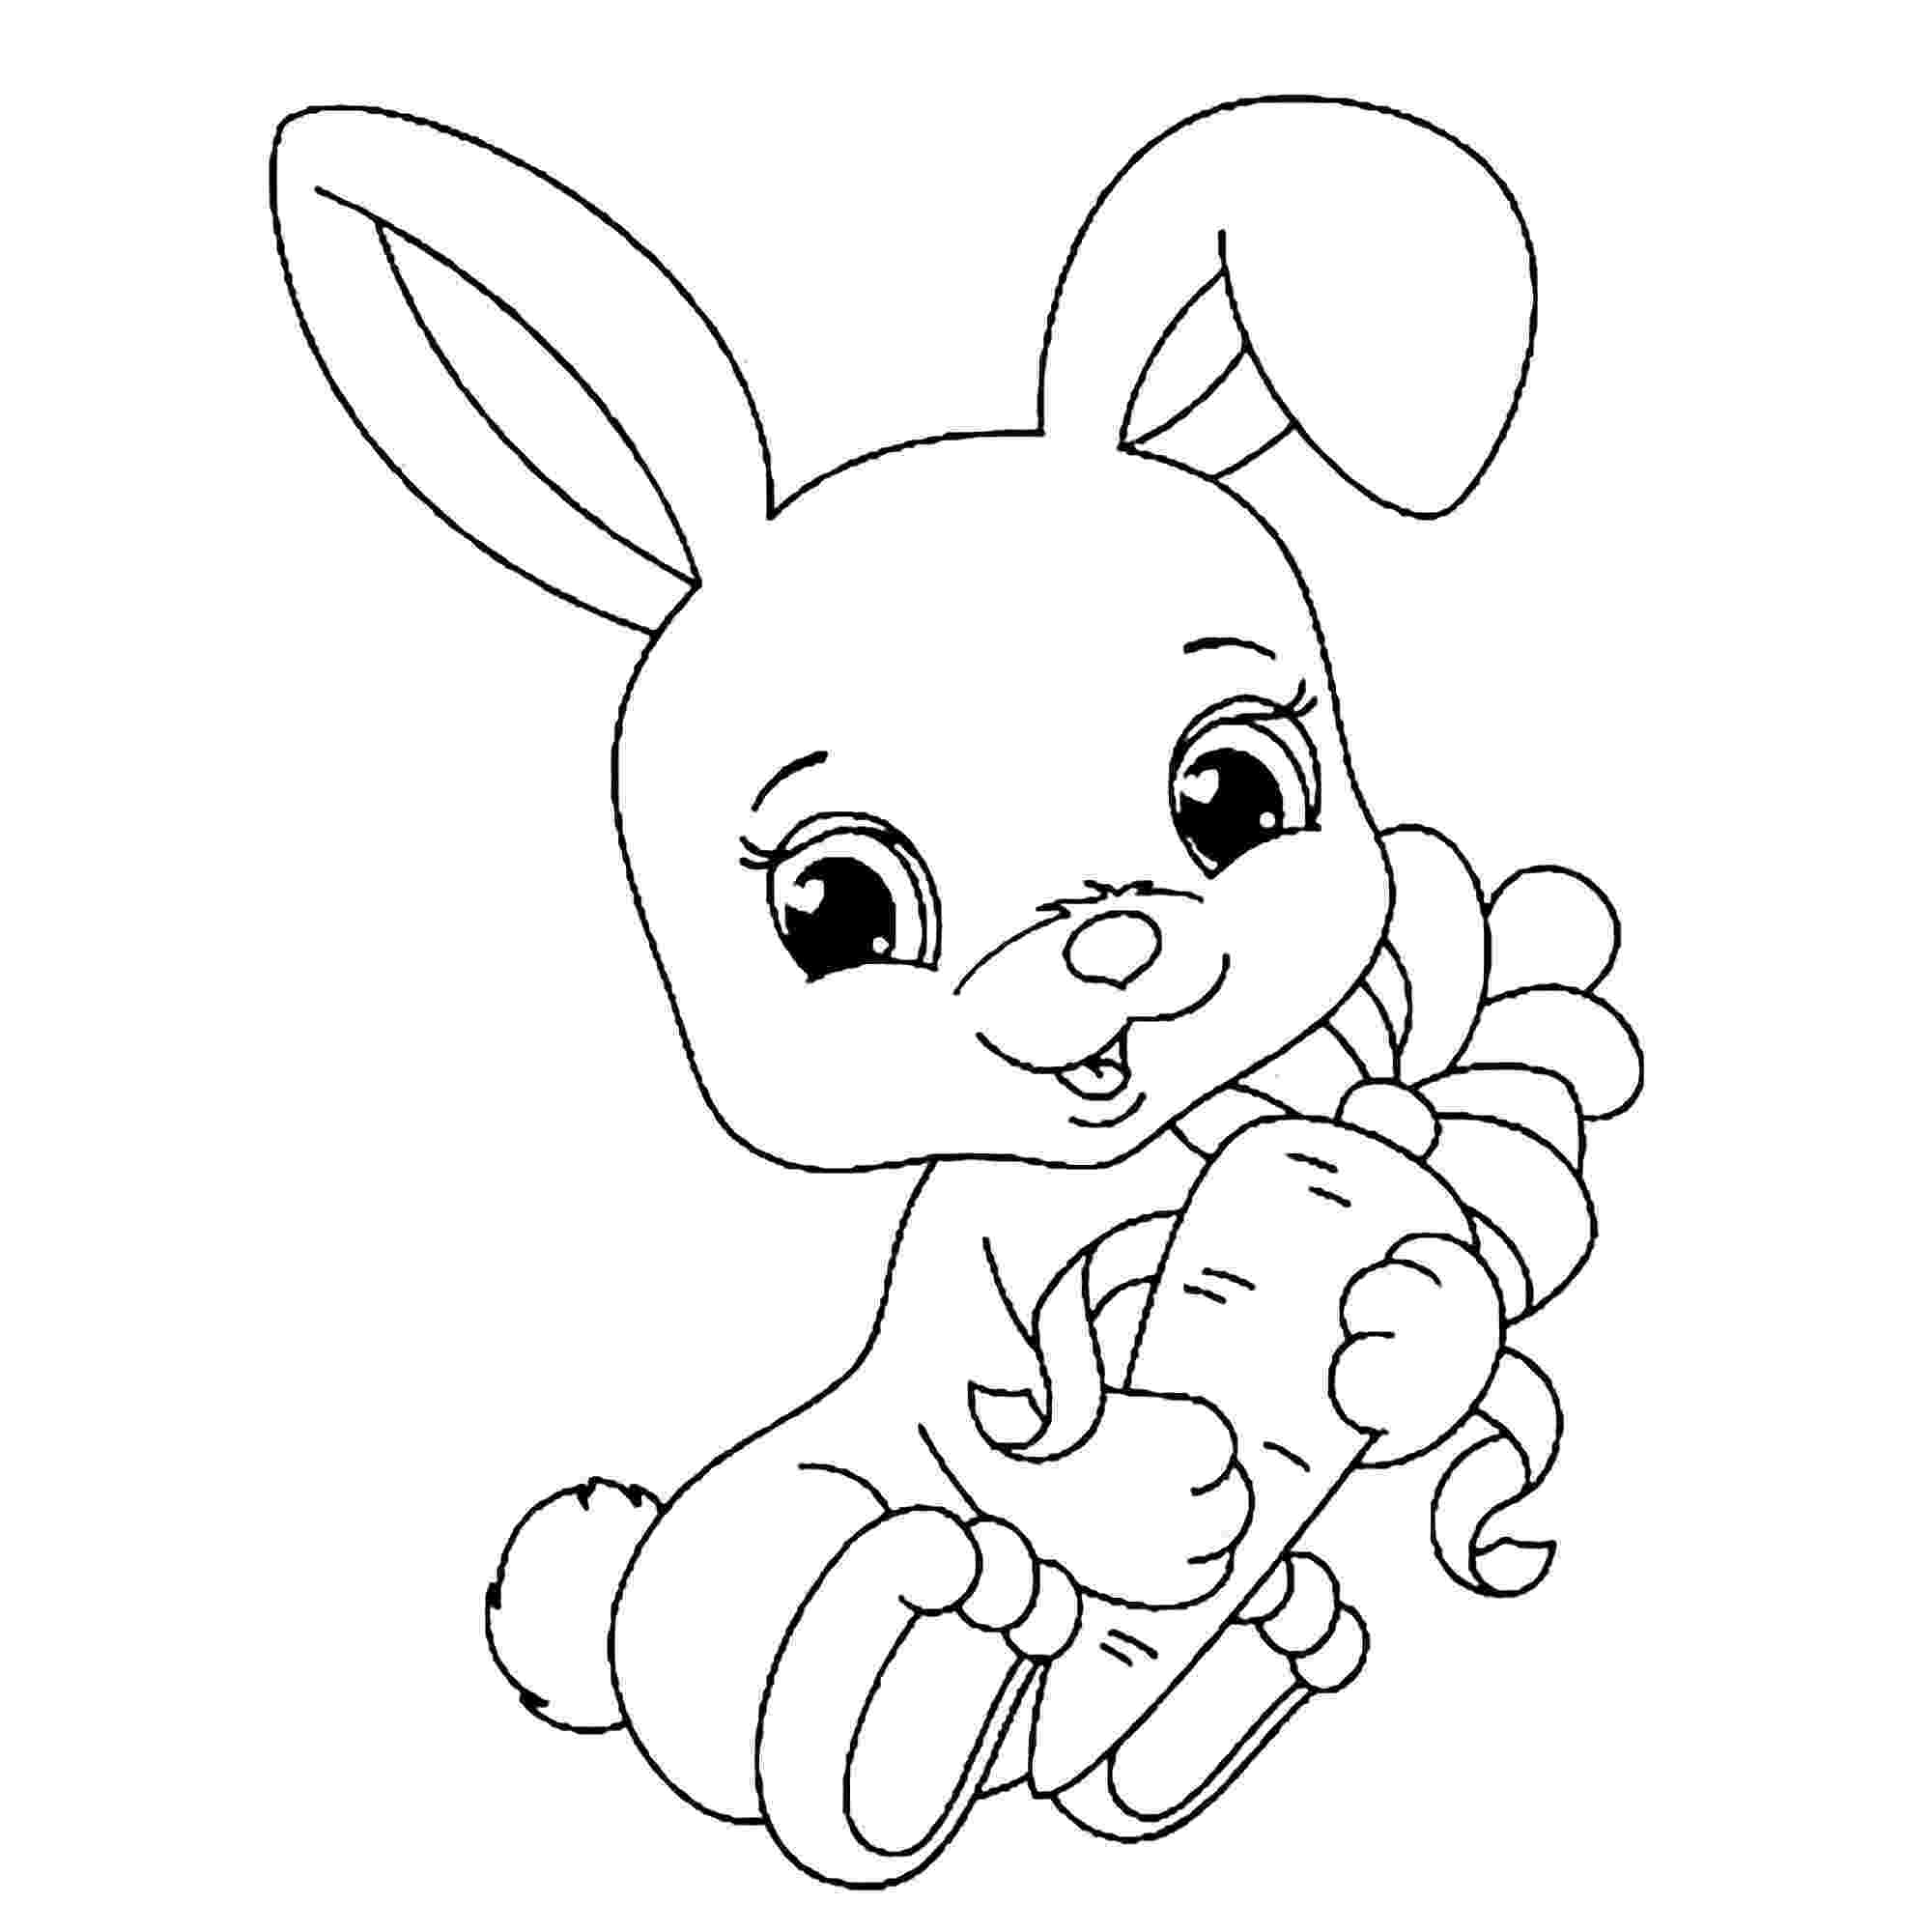 pictures of rabbits for kids printable rabbit coloring pages for kids cool2bkids kids pictures of rabbits for